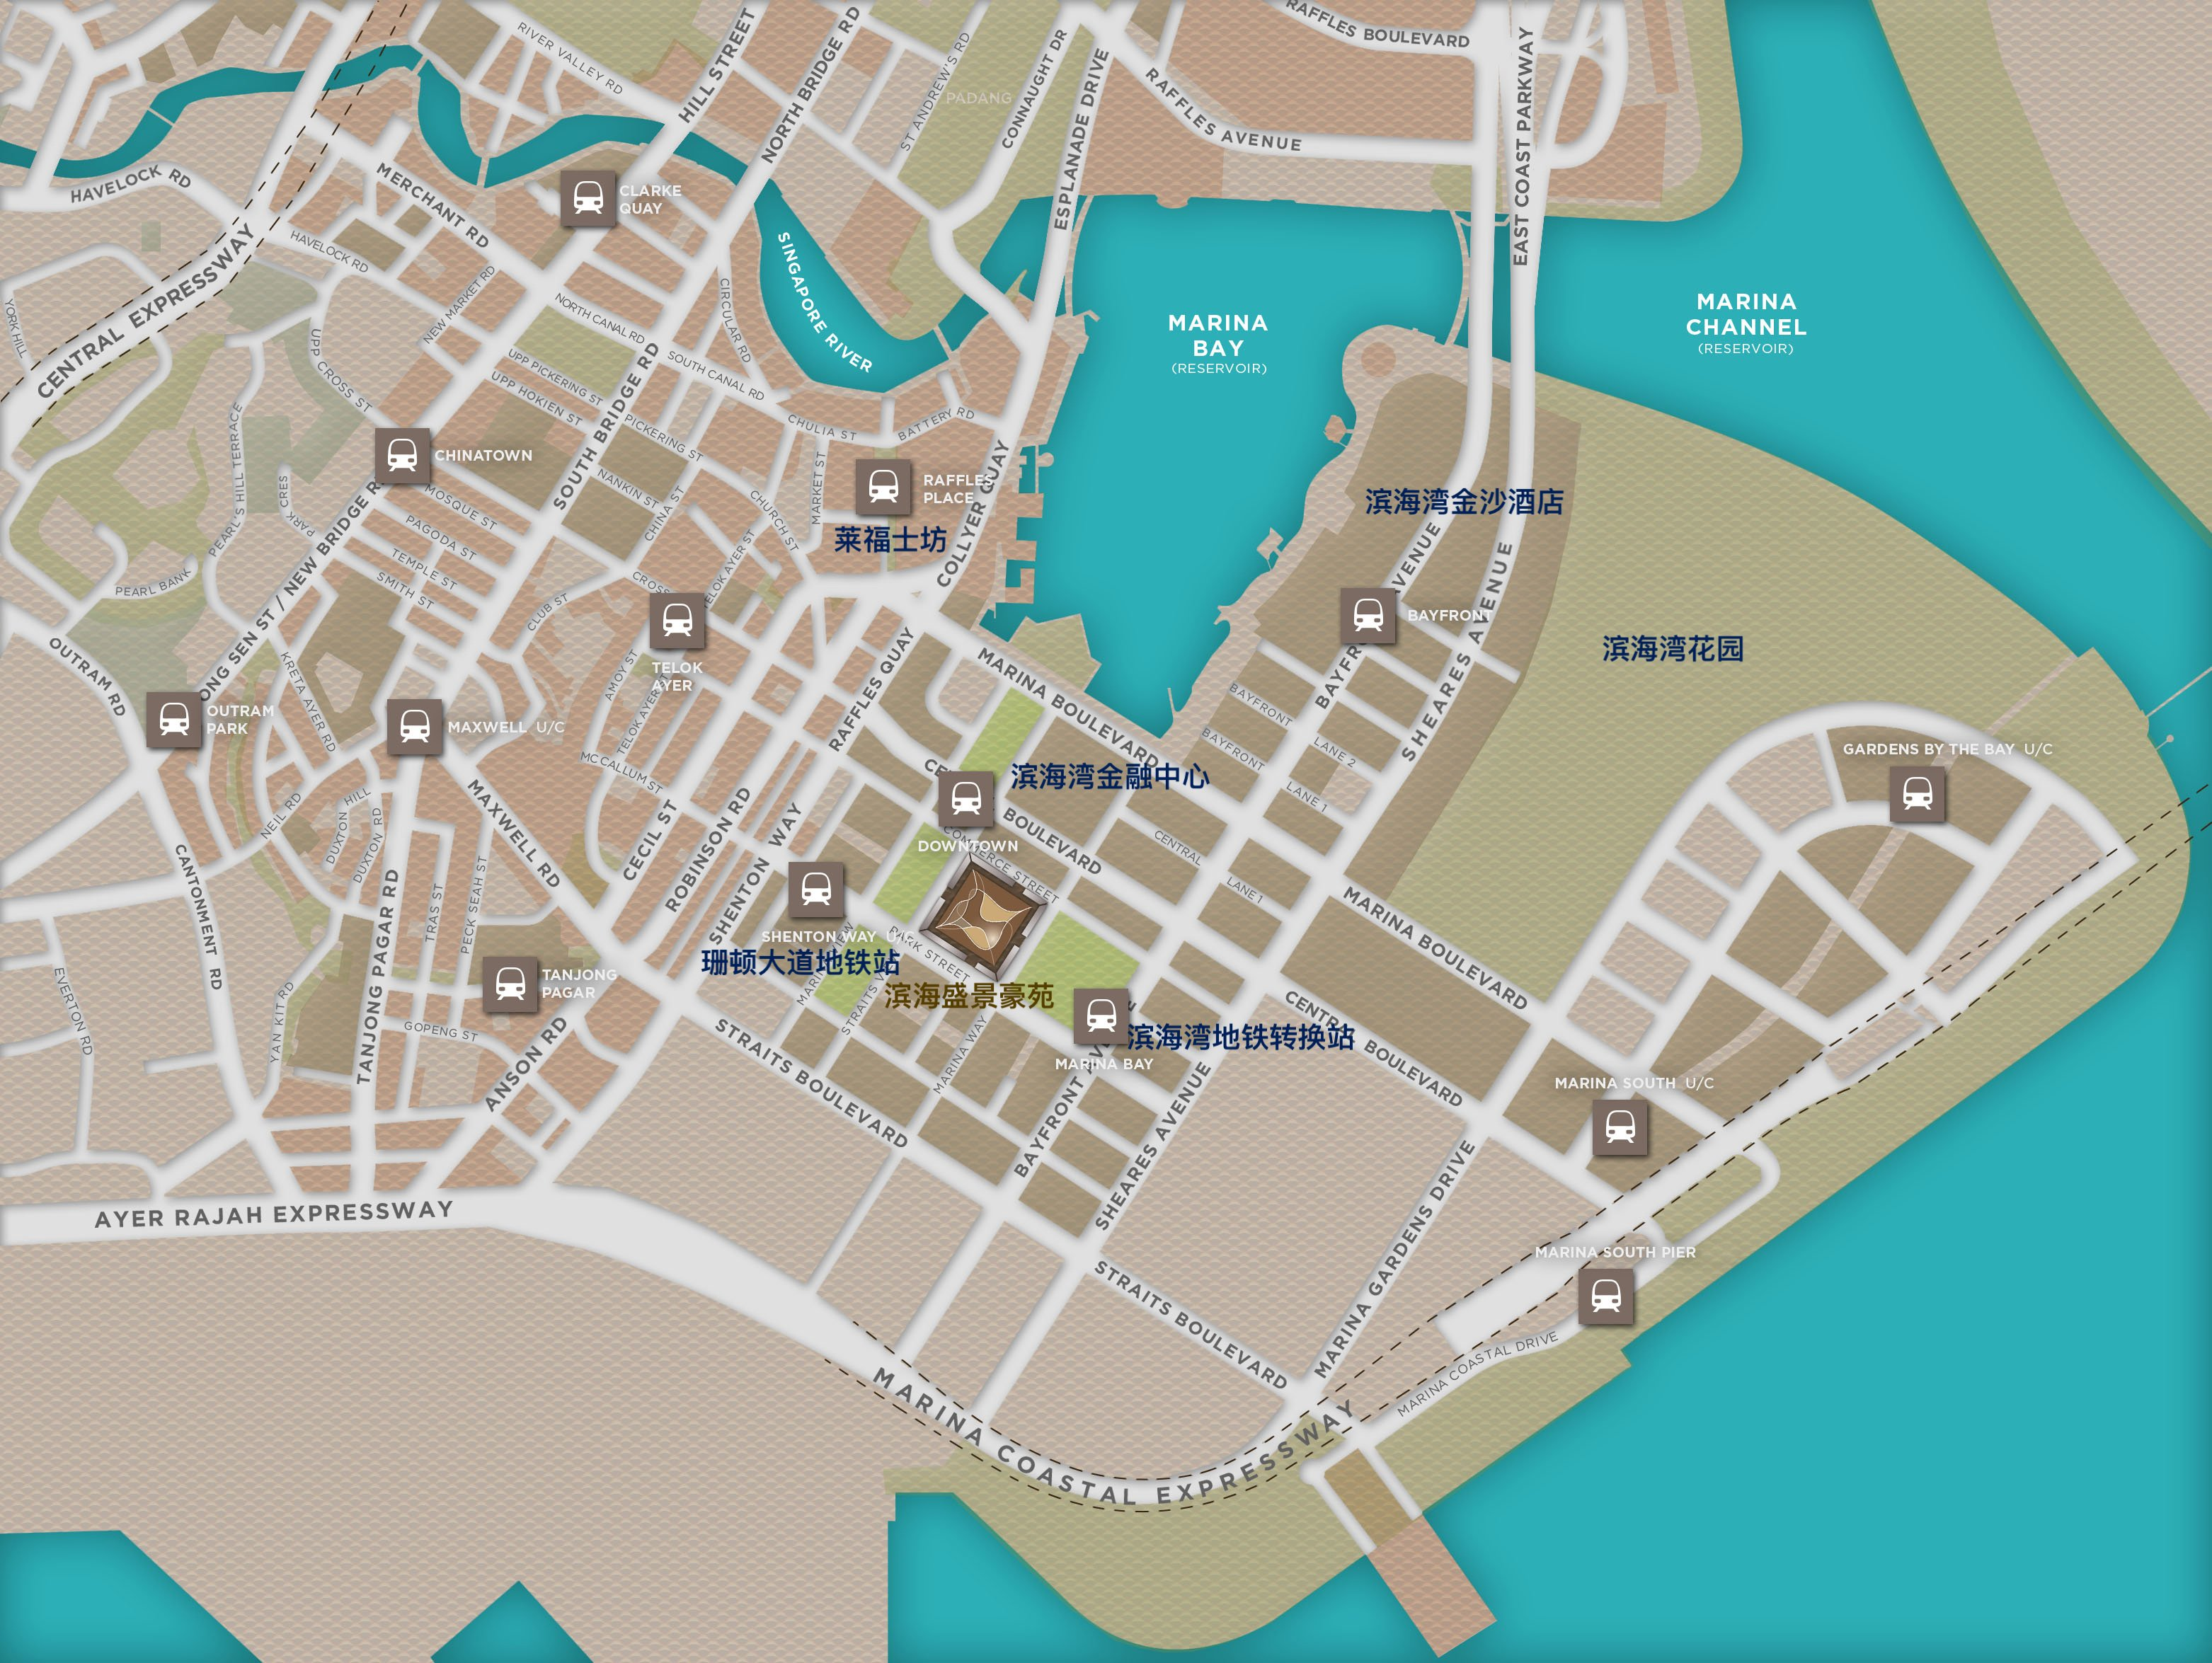 滨海盛景豪苑地段地图 marina one residences location map